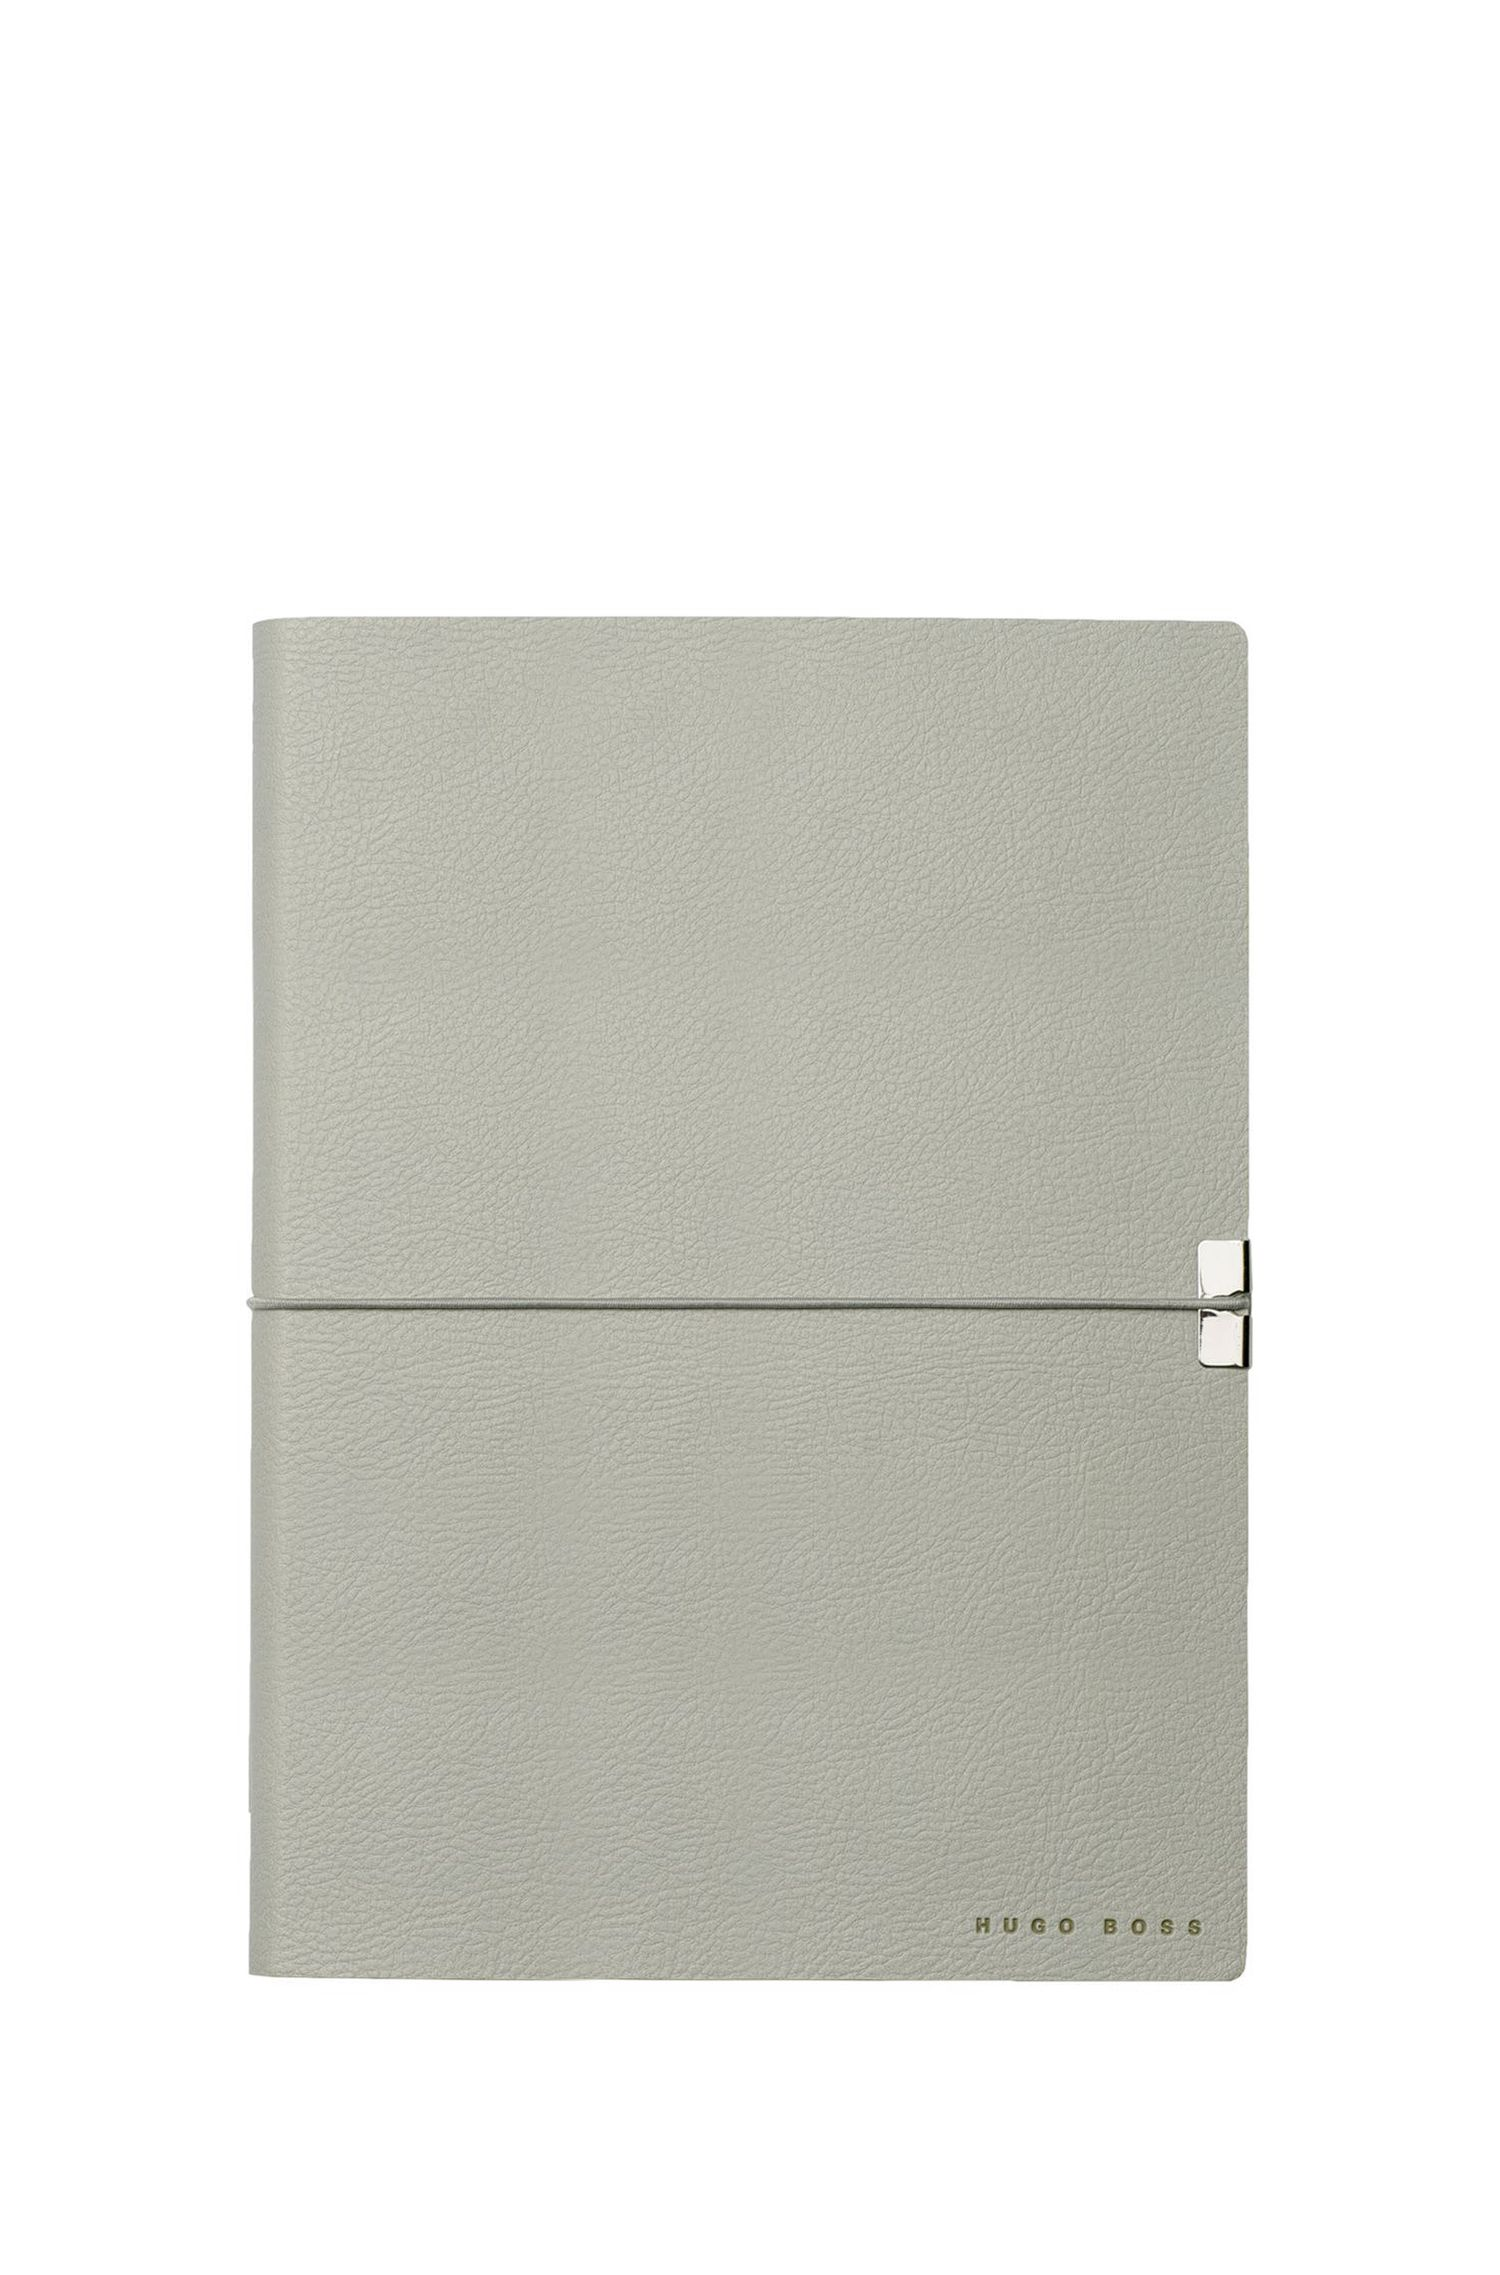 A5 notebook and ballpoint pen gift set in light-grey textured faux leather